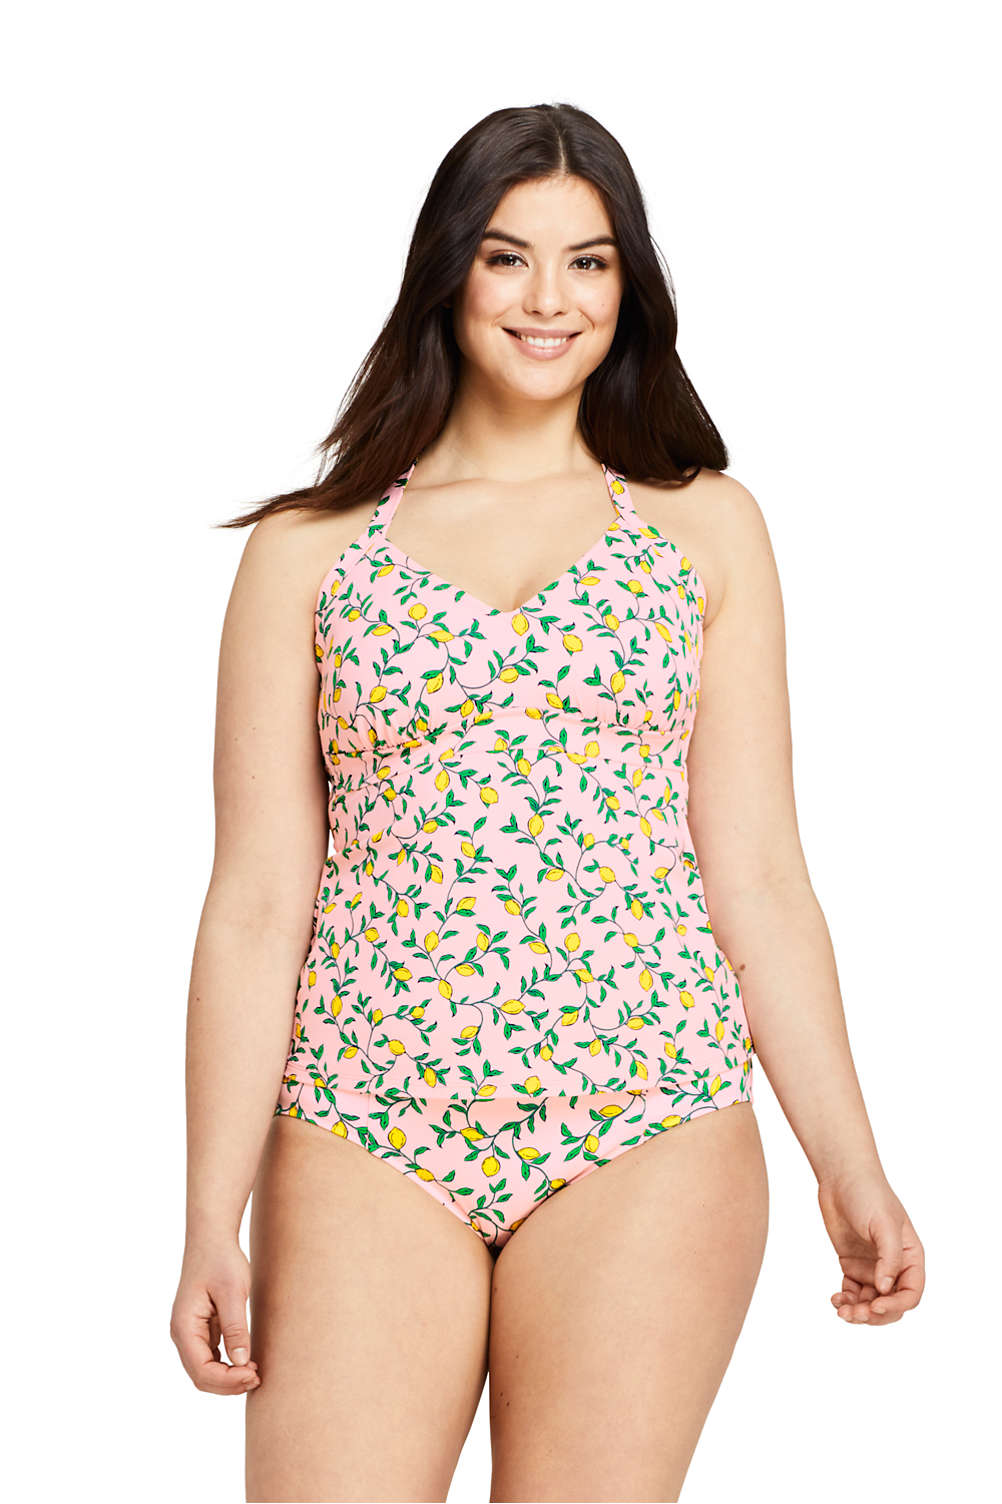 1db9a0d4a75 Women's Plus Size V-neck Tankini Top Swimsuit Print from Lands' End